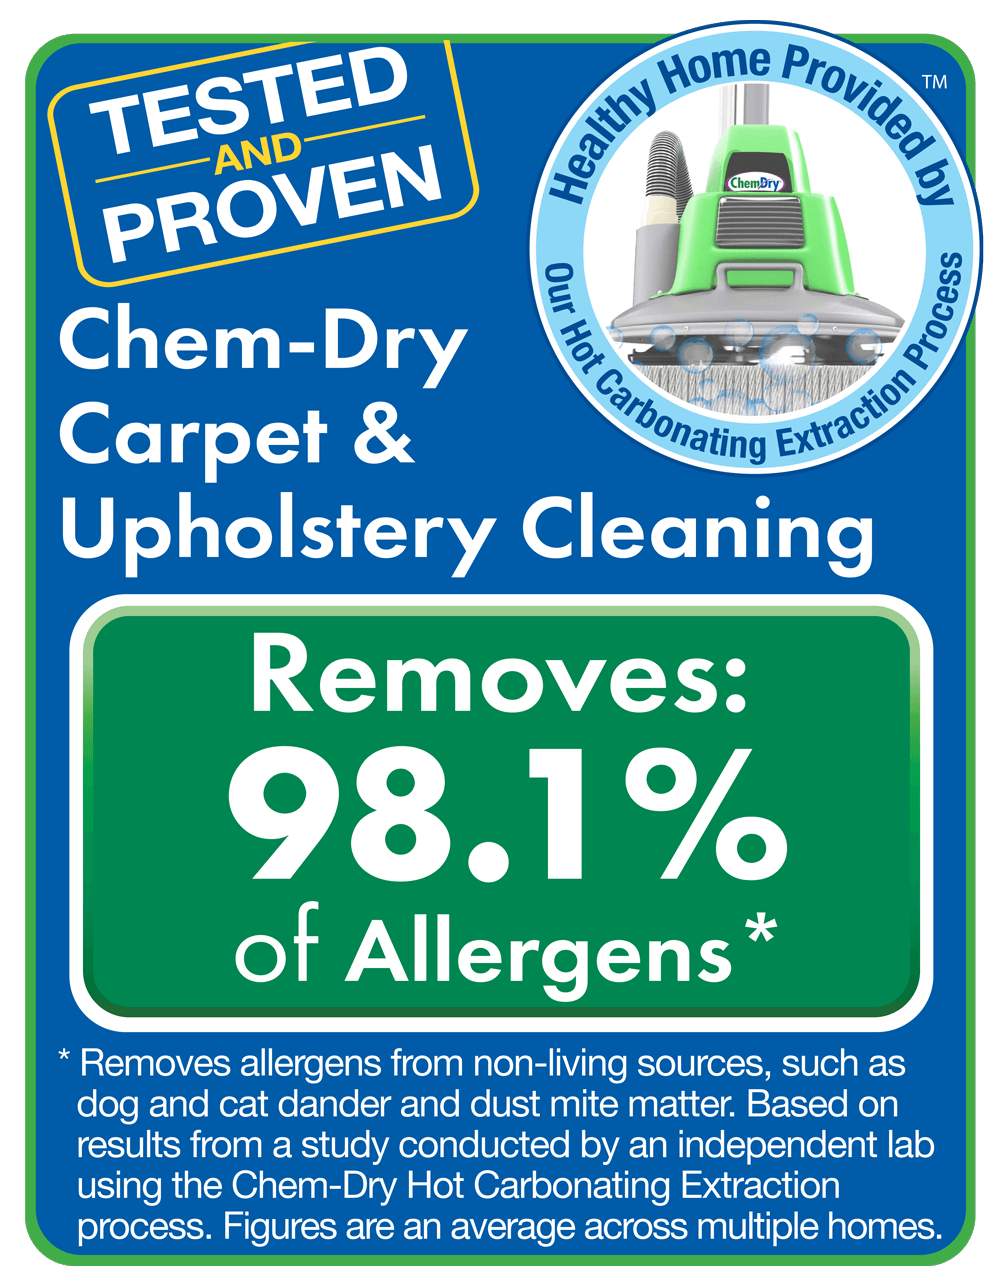 Chem-Dry Allergen Removal in Furniture